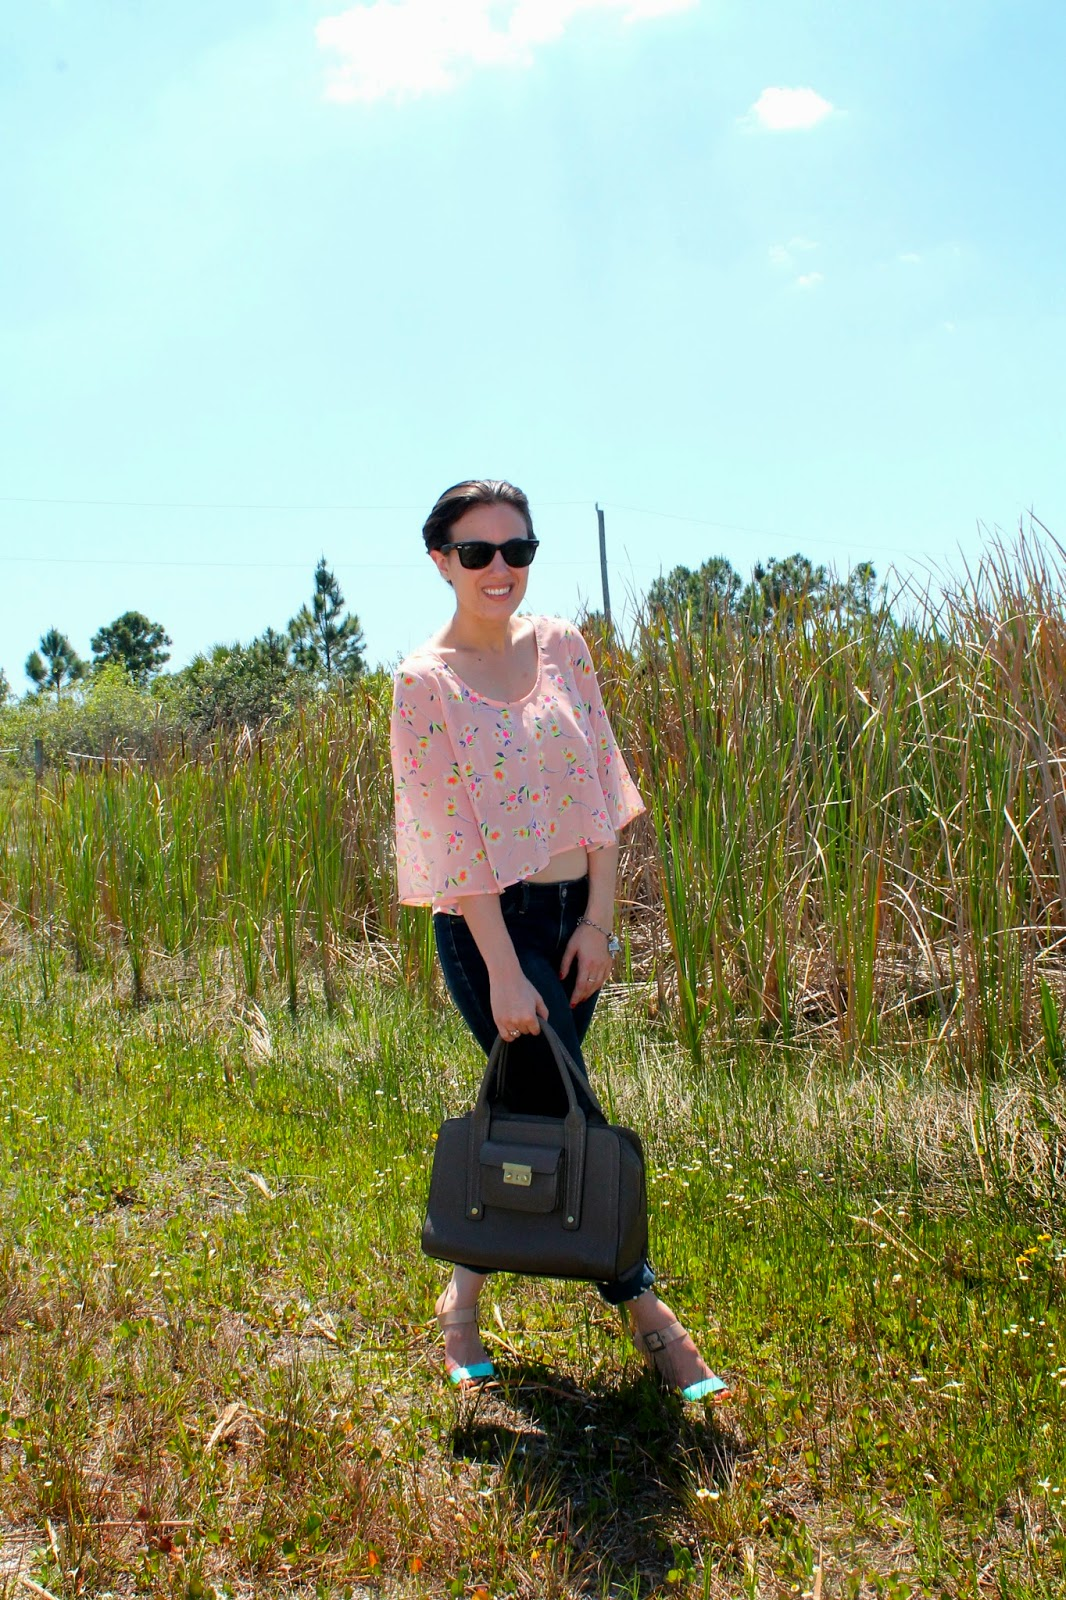 nordstrom, Lush, BCBGeneration, 3.1 Phillip Lim for Target, 3.1 Phillip Lim, Levi's, Ray-Ban, fashion blog, style blog, blogger style, lookbook, spring outfits, spring outfit ideas, Easter outfit, blush, floral